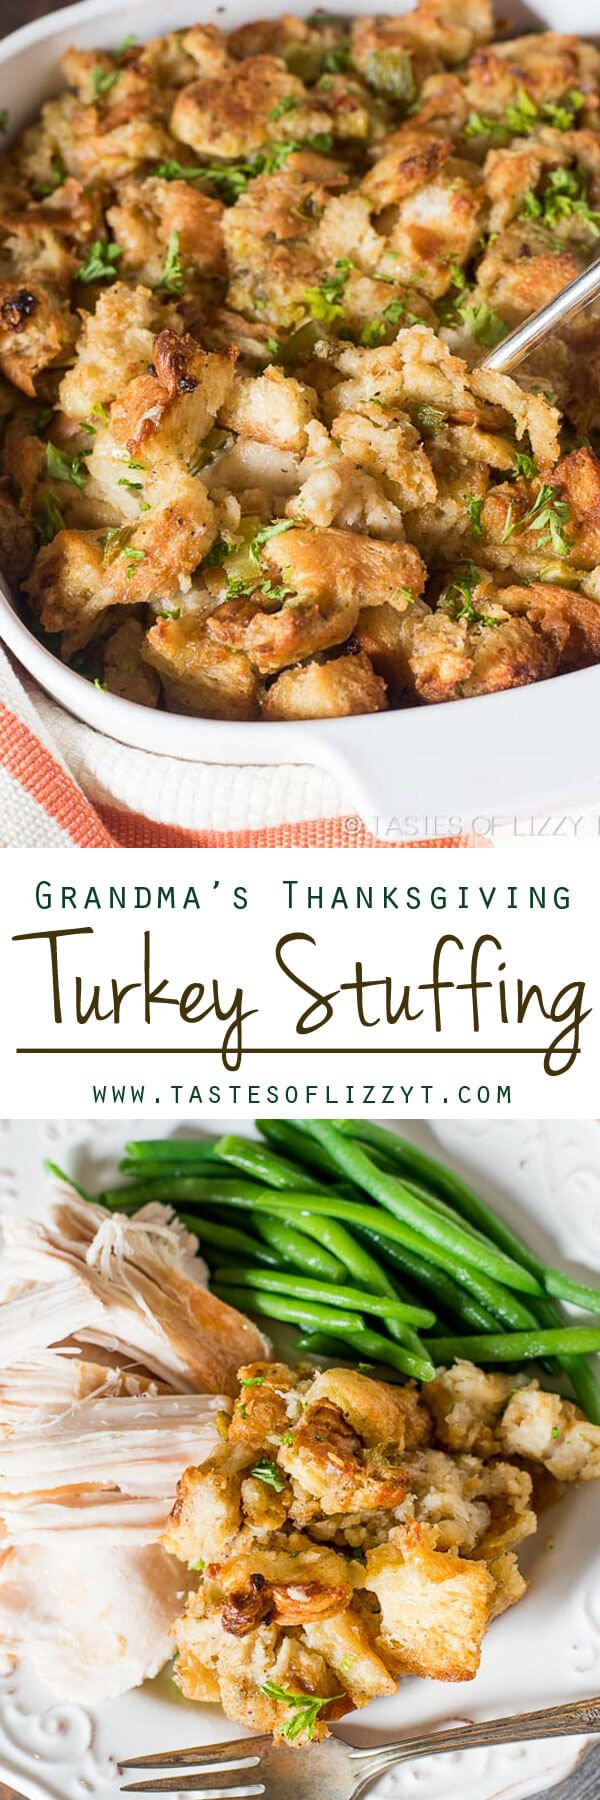 Grandma's Thanksgiving Turkey Stuffing. This is a long-time family recipe for simple and savory turkey stuffing. Bake it in the oven or in the turkey! via @tastesoflizzyt